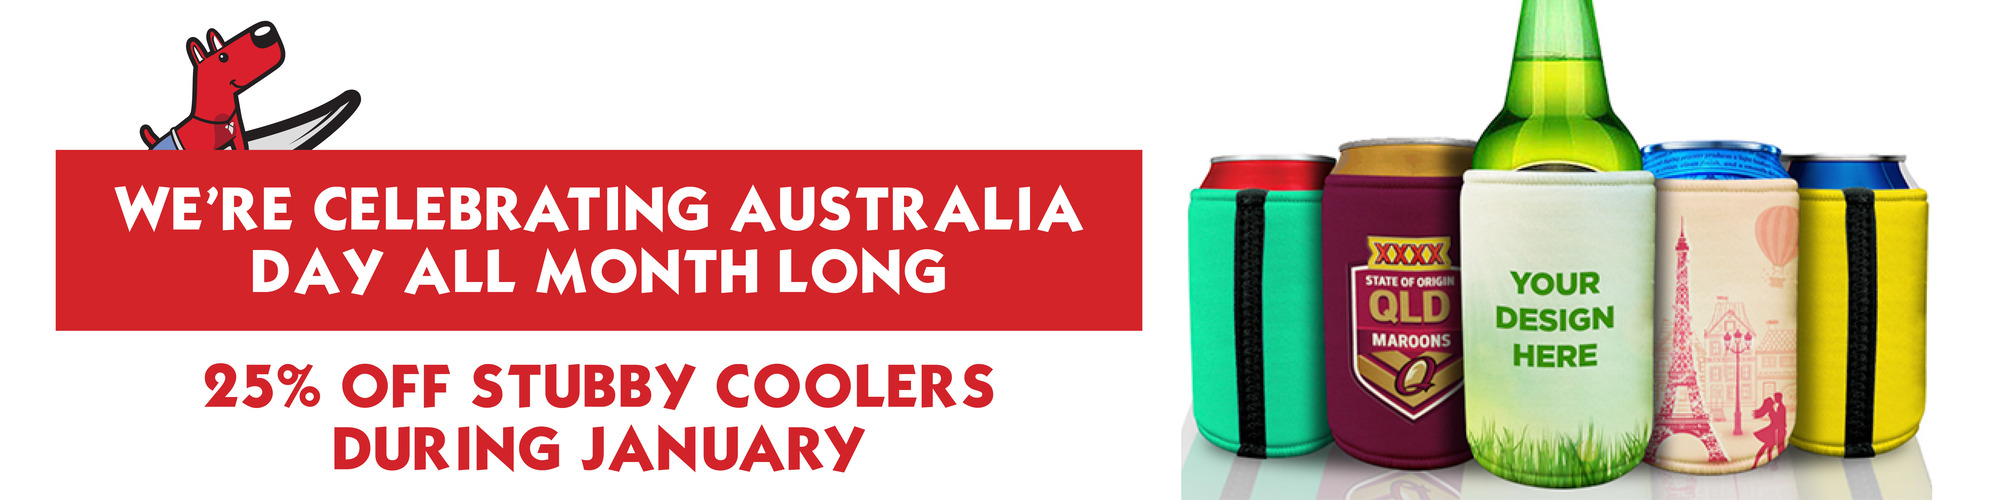 25% Off Stubby Coolers January